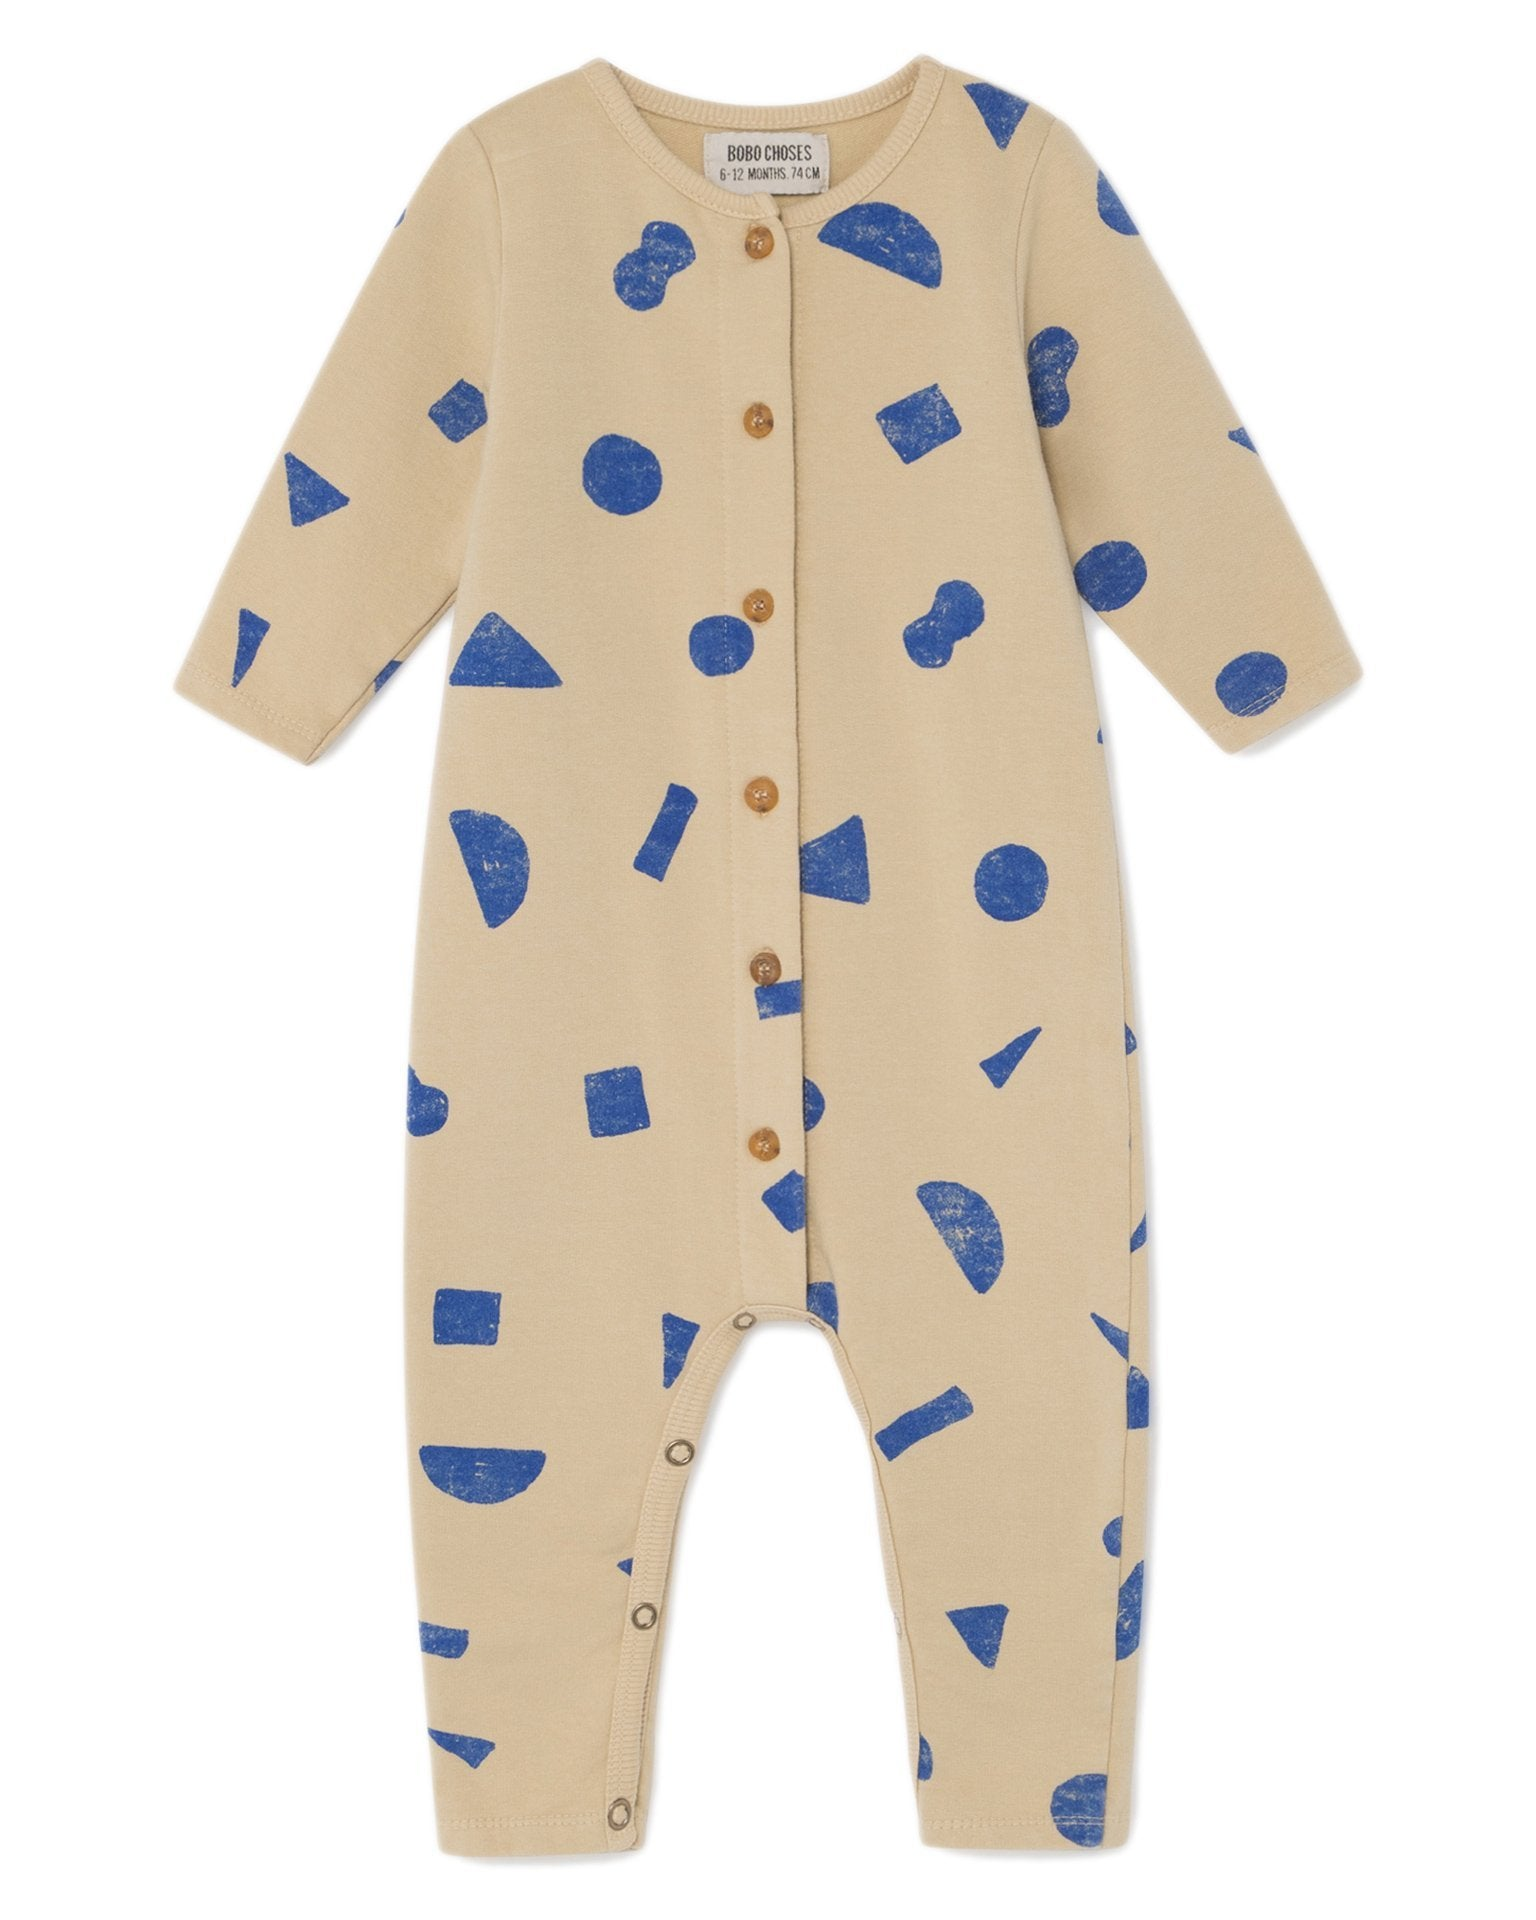 Little bobo choses baby boy all over stuff jumpsuit